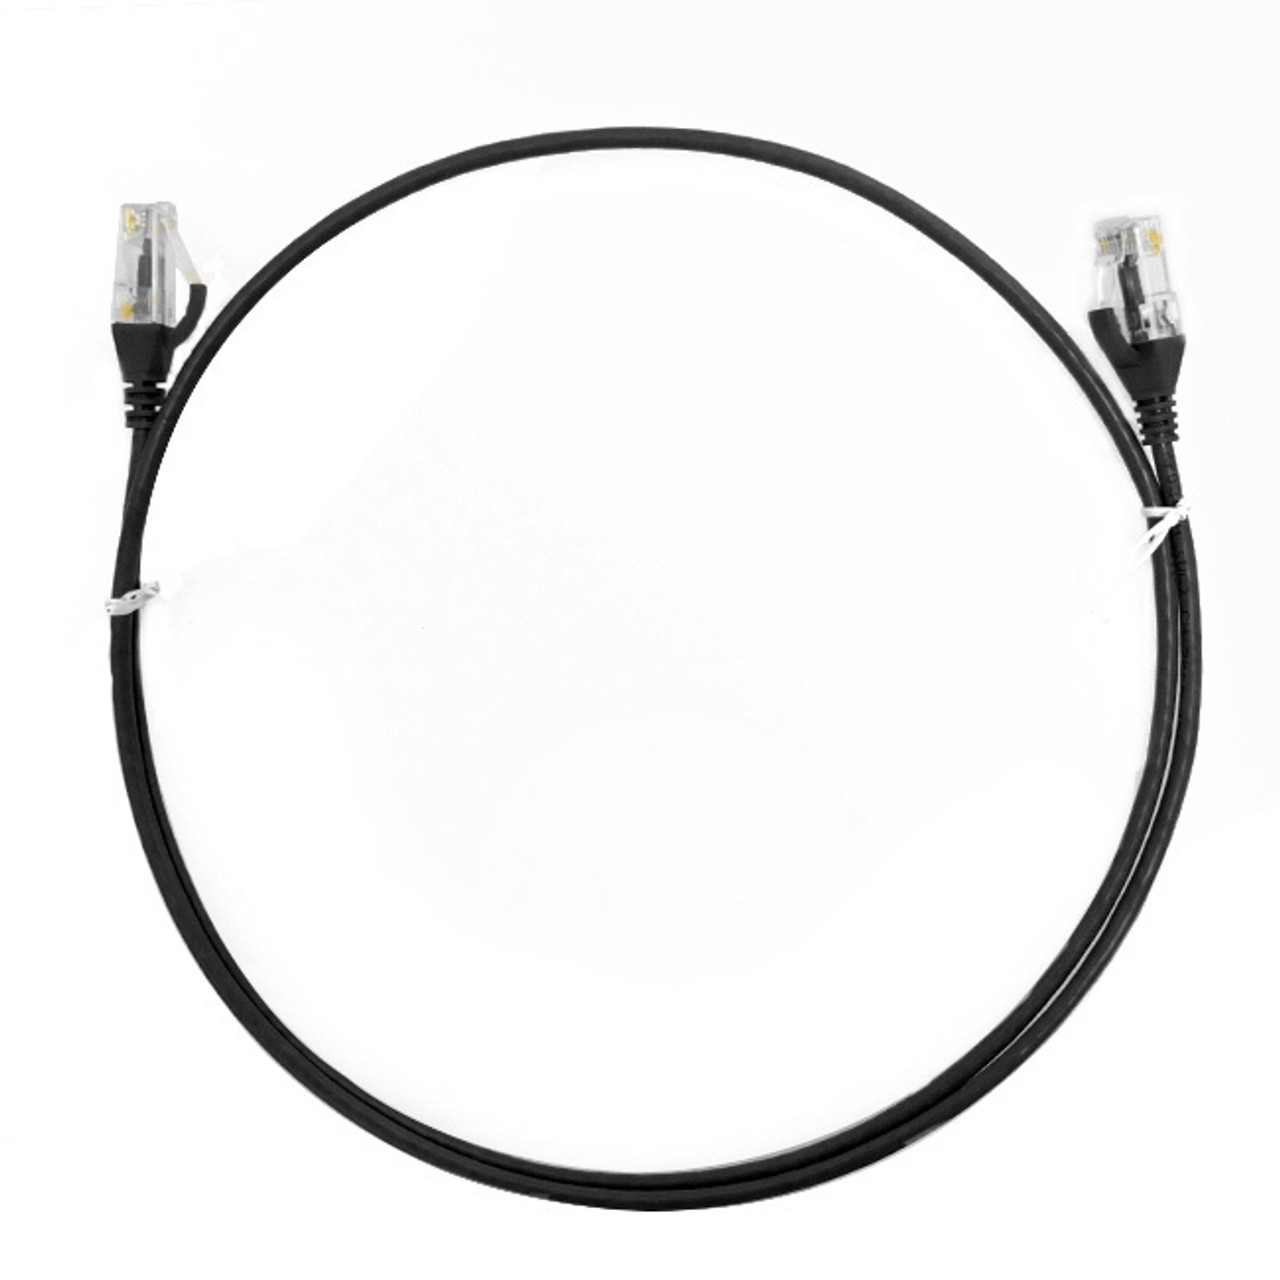 Image for 0.15m Cat 6 RJ45 RJ45 Ultra Thin LSZH Network Cables  : Black CX Computer Superstore